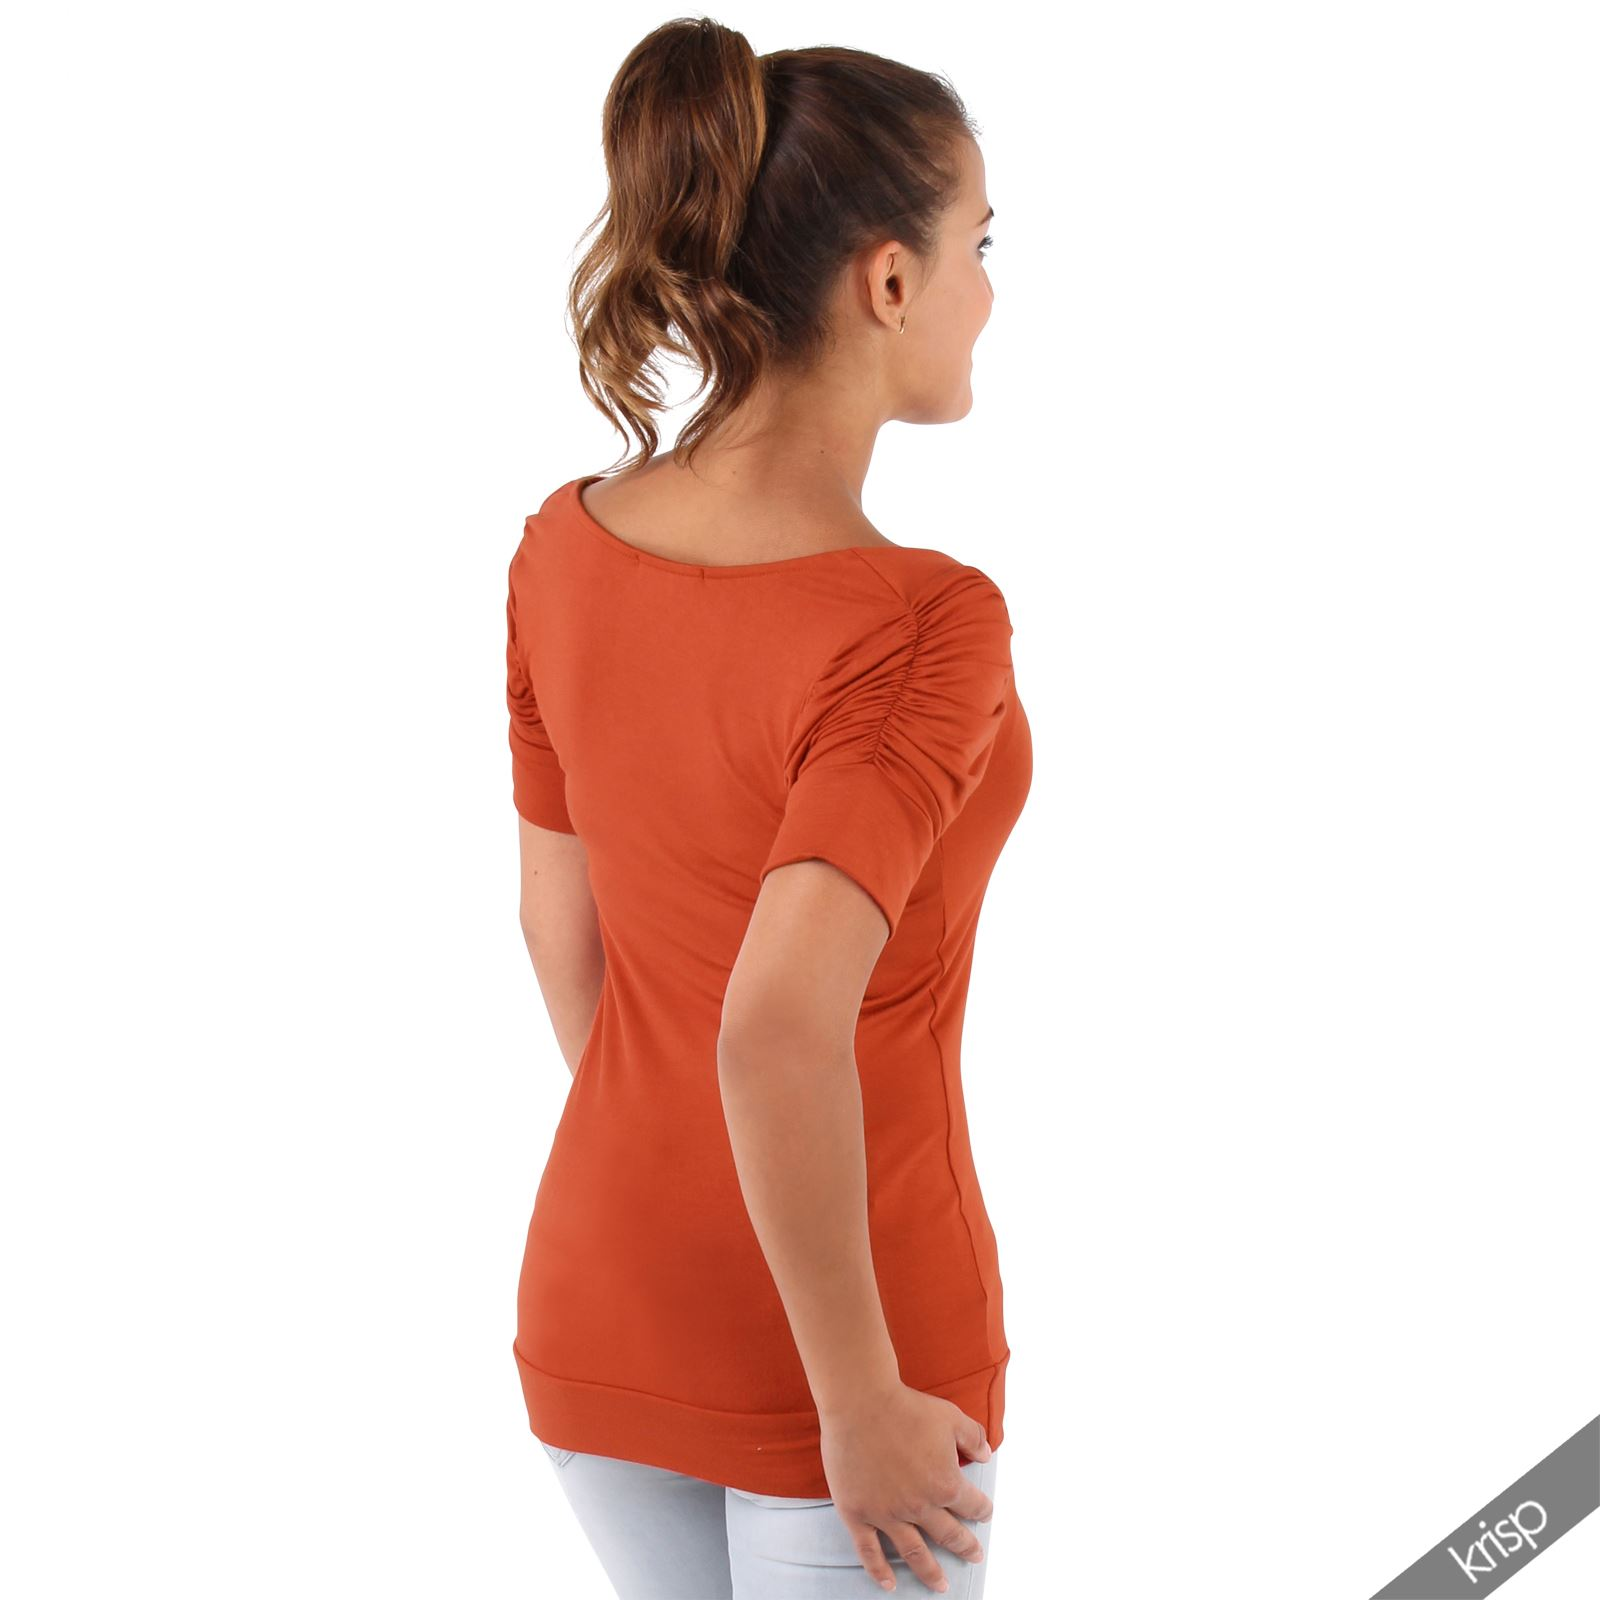 Womens-Ladies-Long-Blouse-Ruched-Pleated-Sleeve-Stretch-Jersey-Plunge-Top-Tshirt thumbnail 34